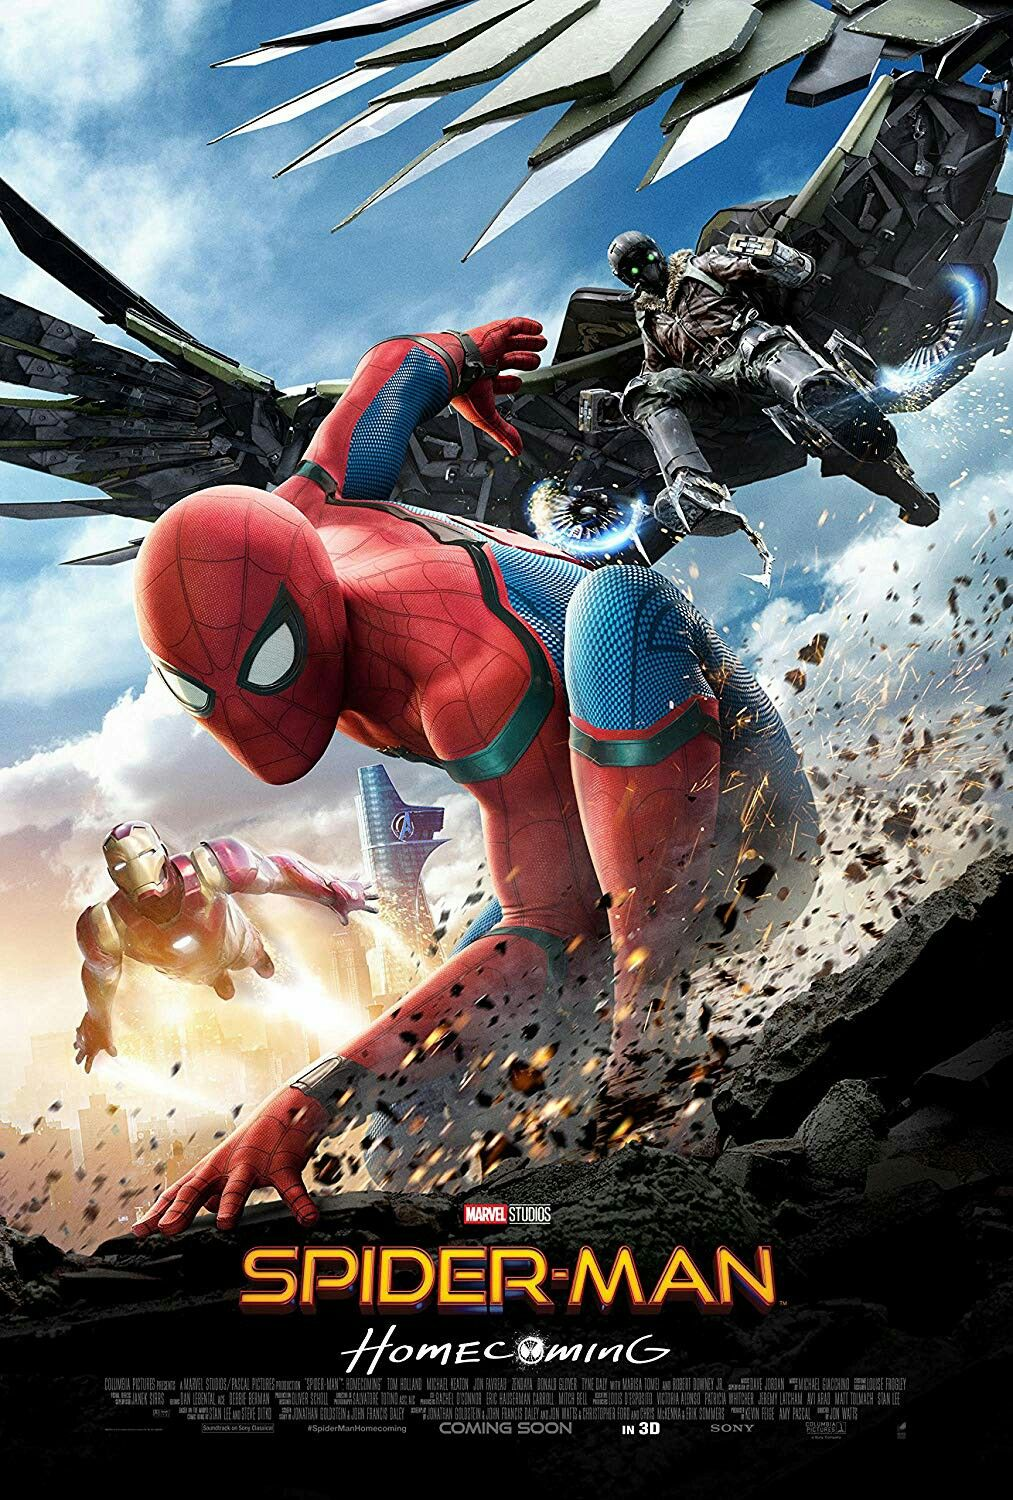 SPIDER-MAN; HOMECOMING Movie PHOTO Print POSTER Textless Film Art Tom Holland 07